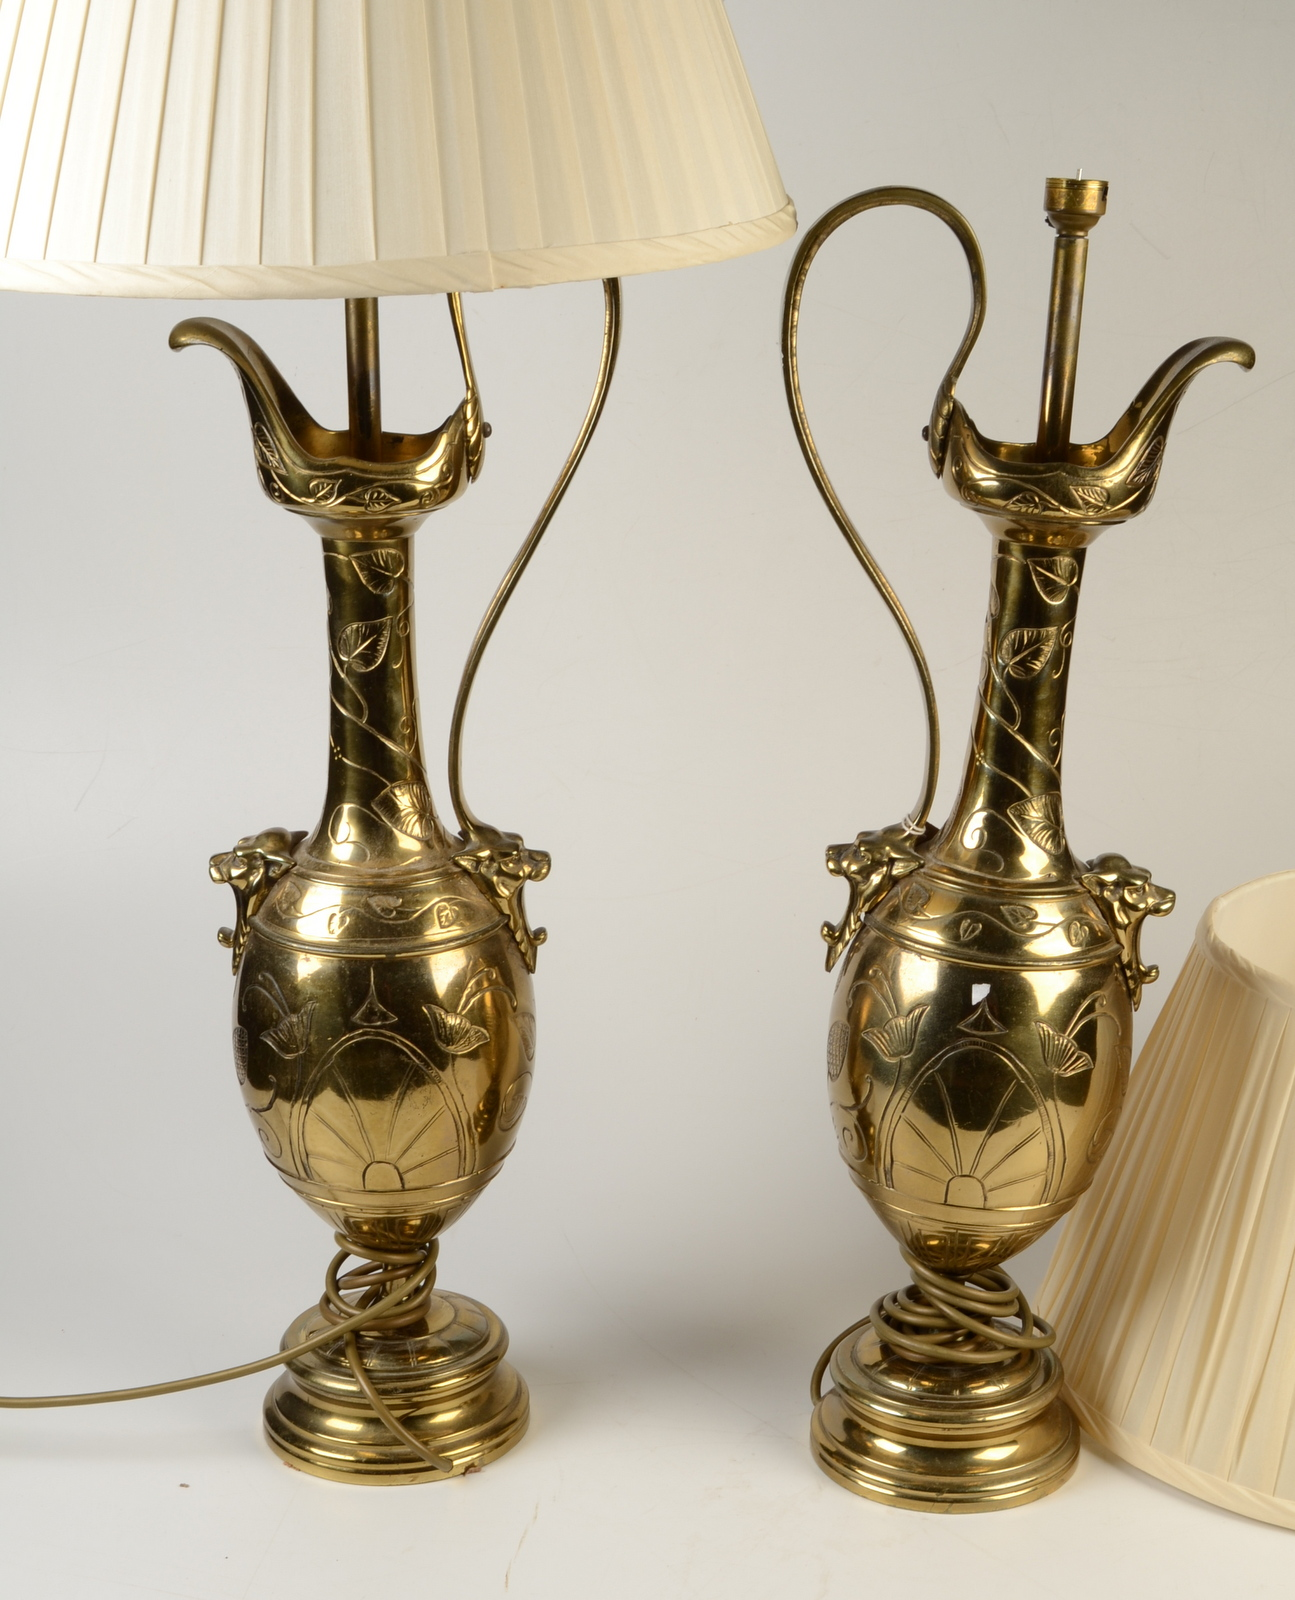 Lot 46 - A pair of impressive Aesthetic Movement brass table lamps of ewer form.